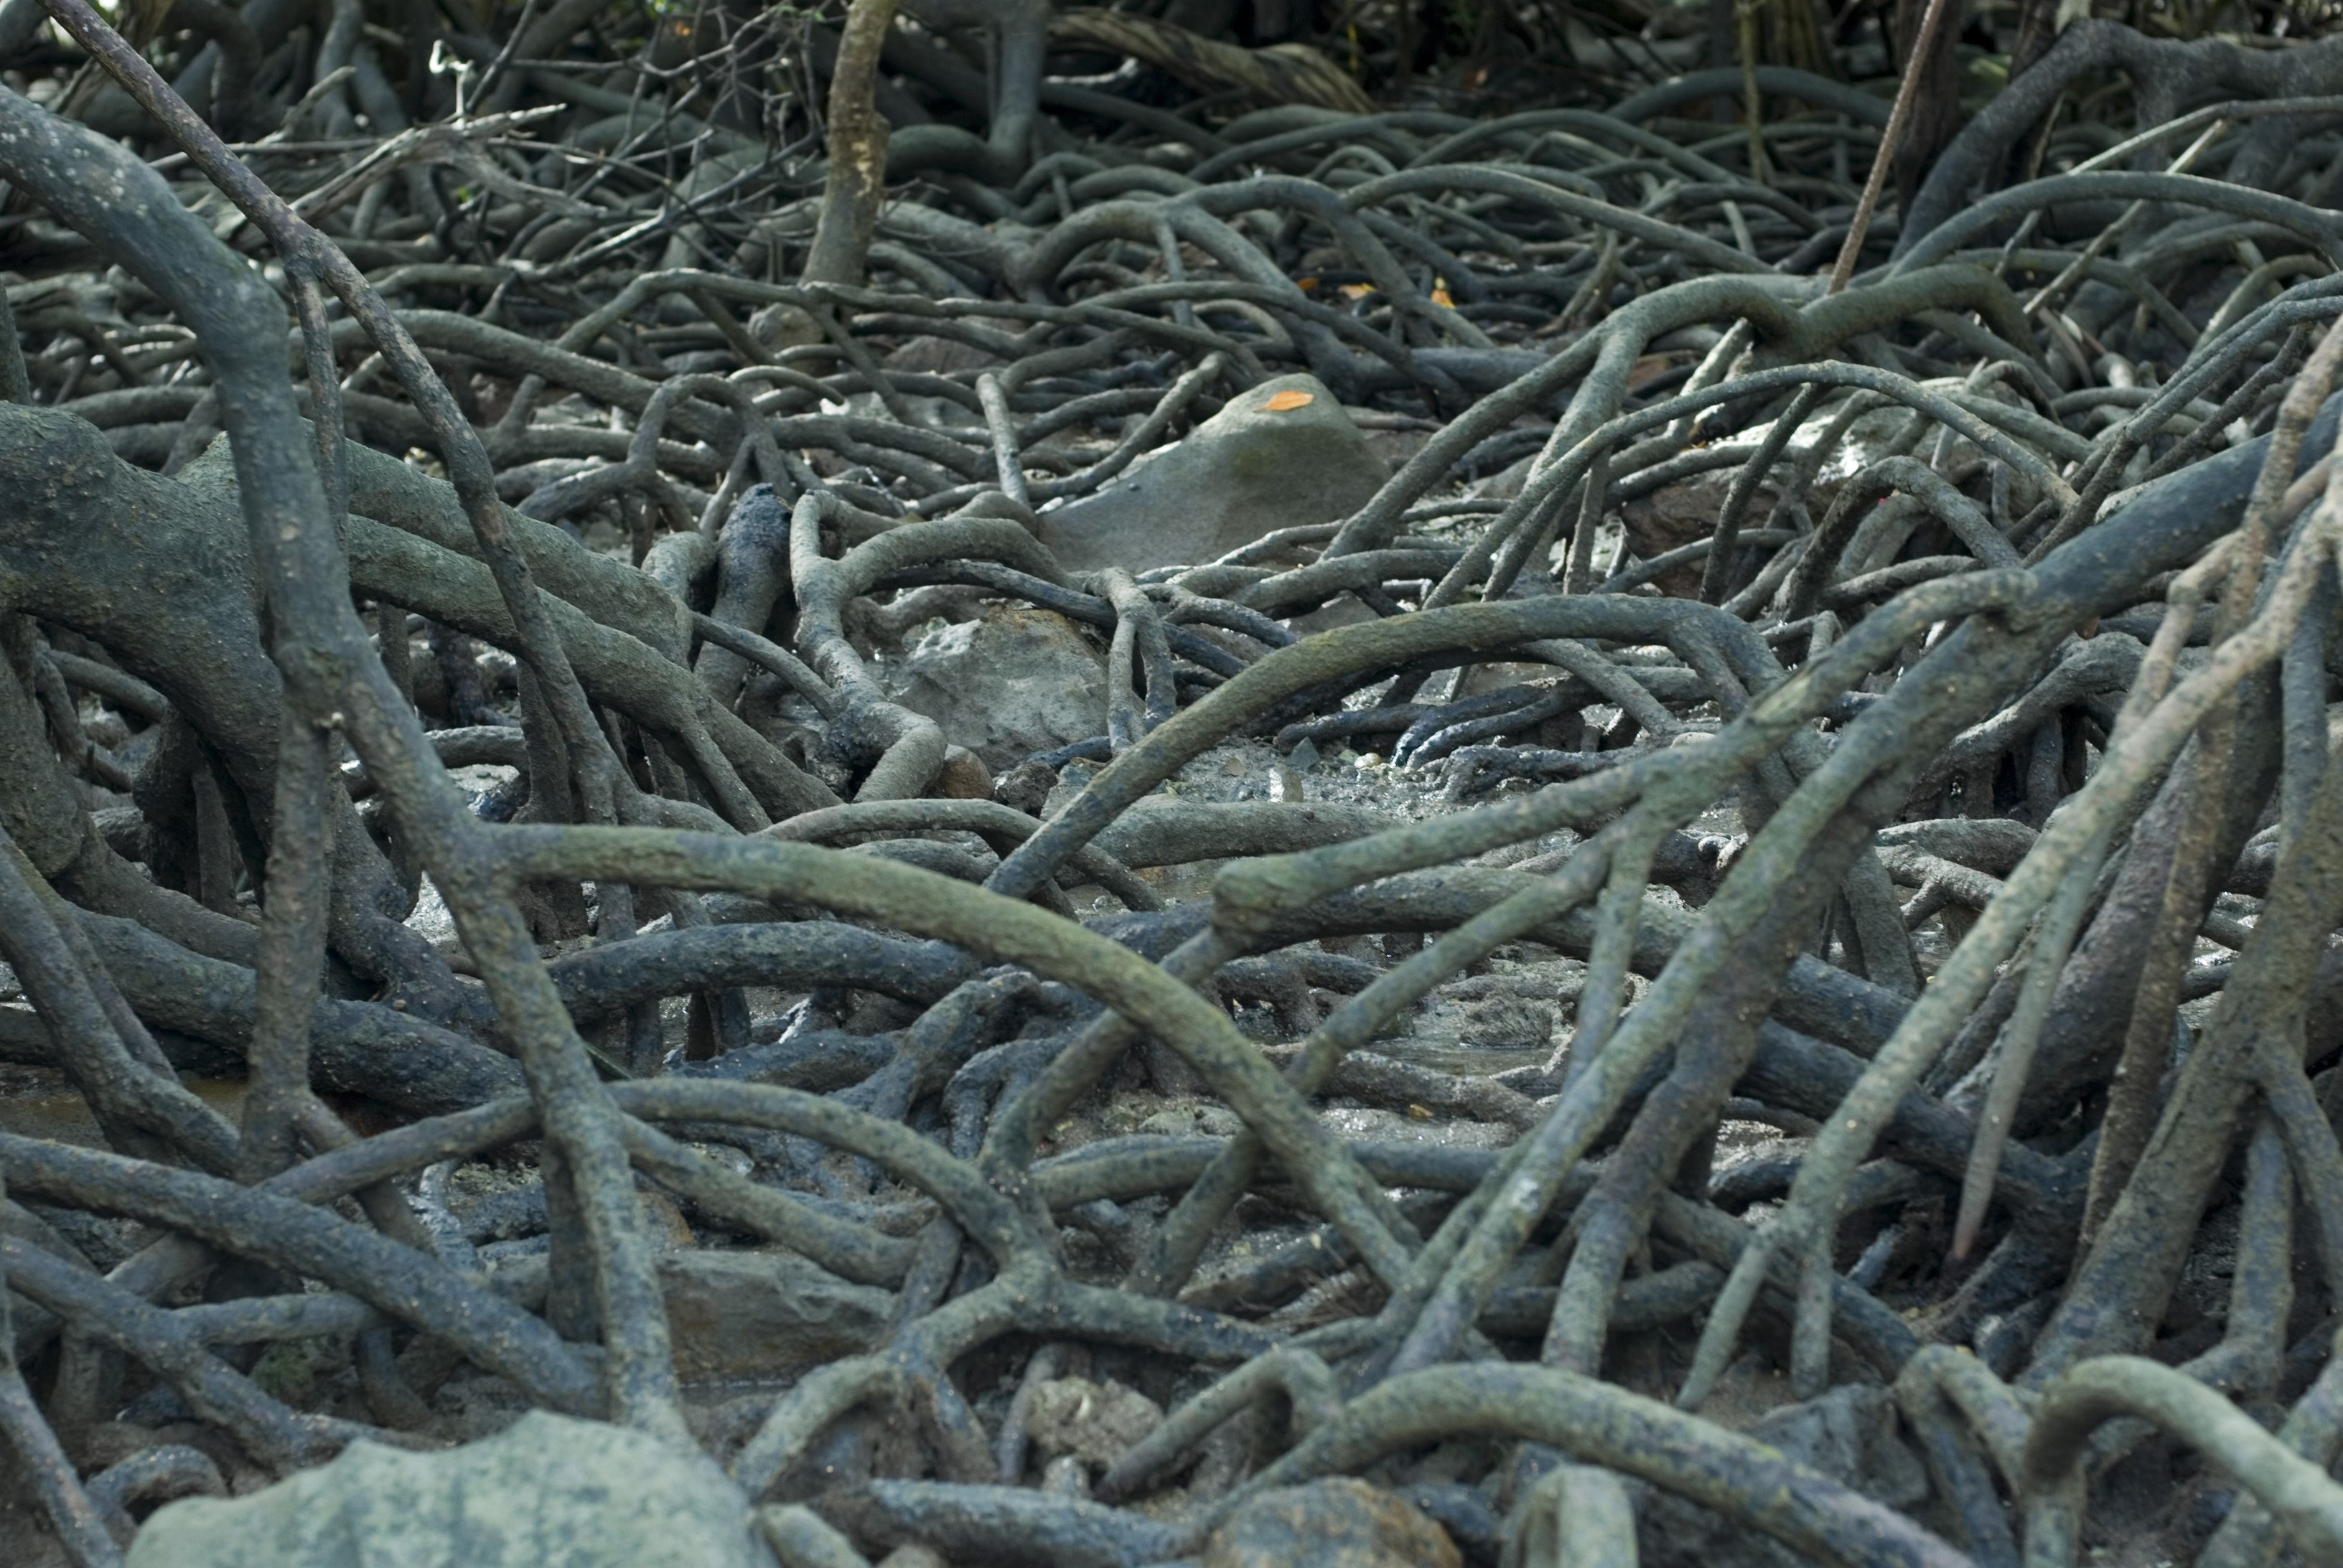 details of mangroves